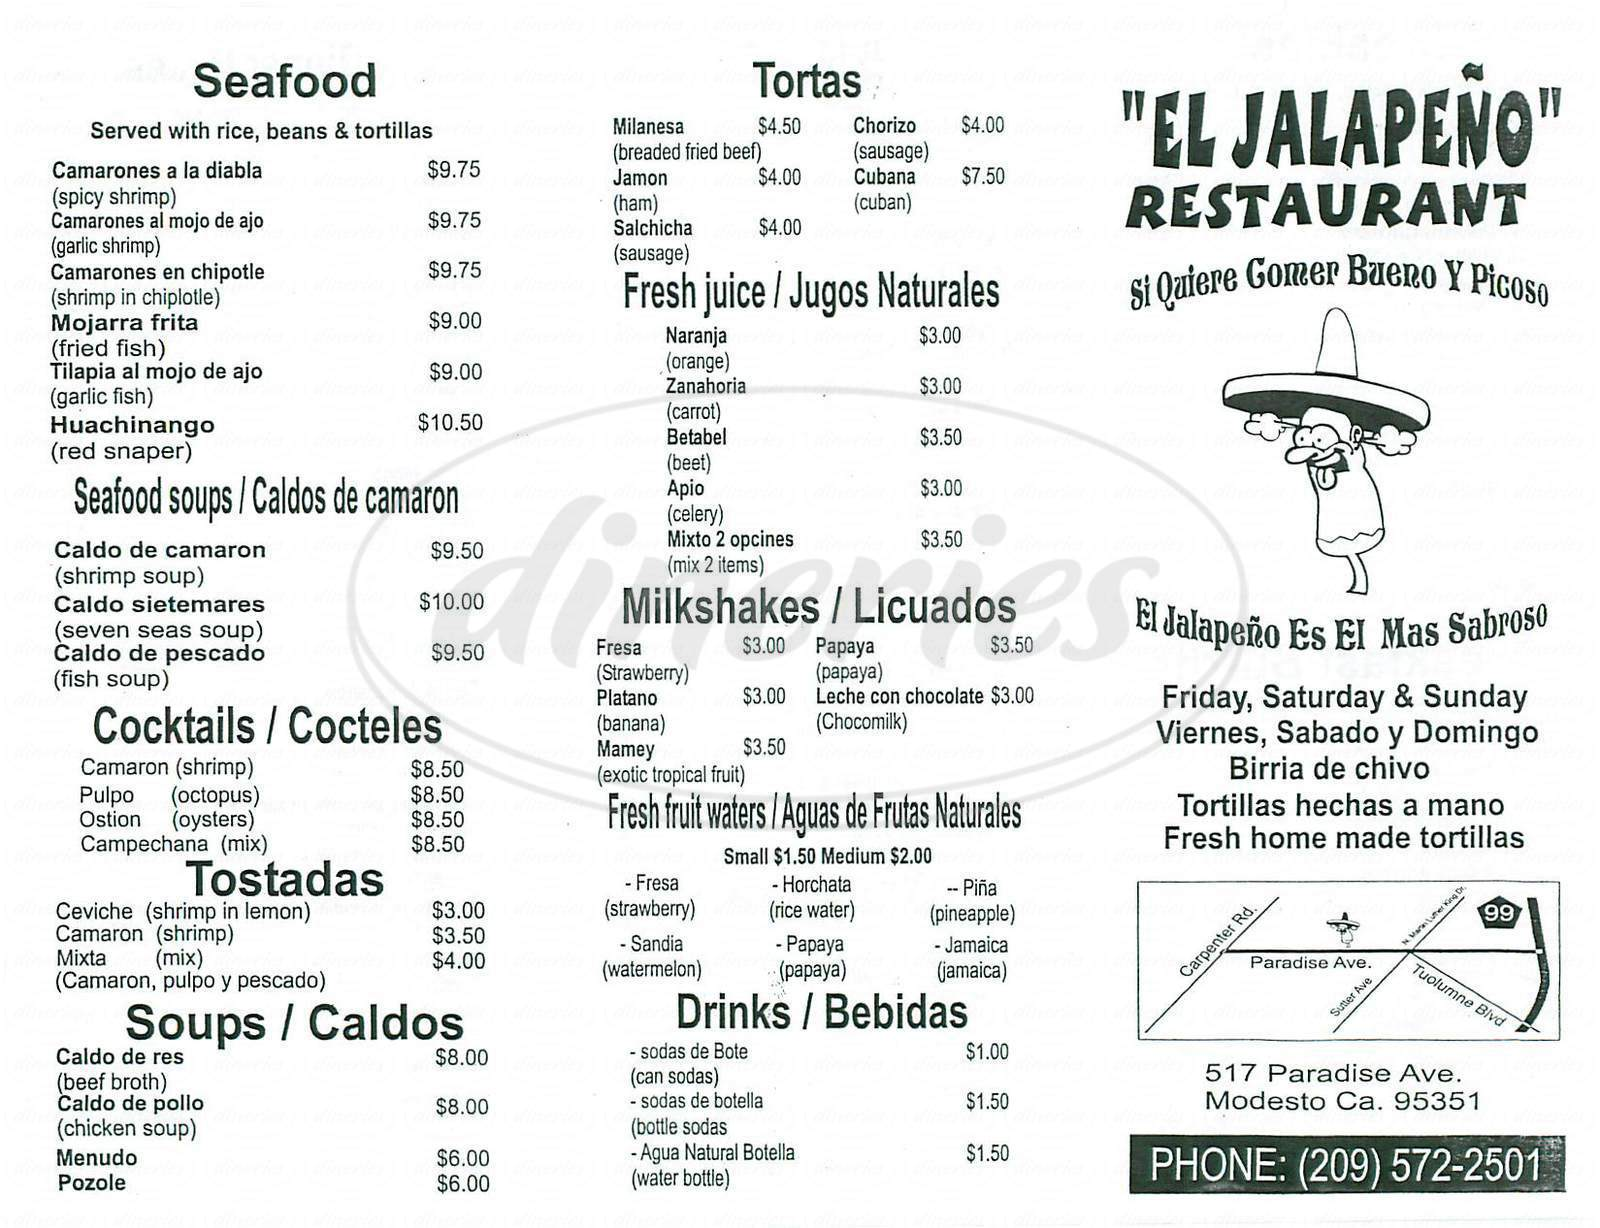 menu for El Jalapeño Restaurant